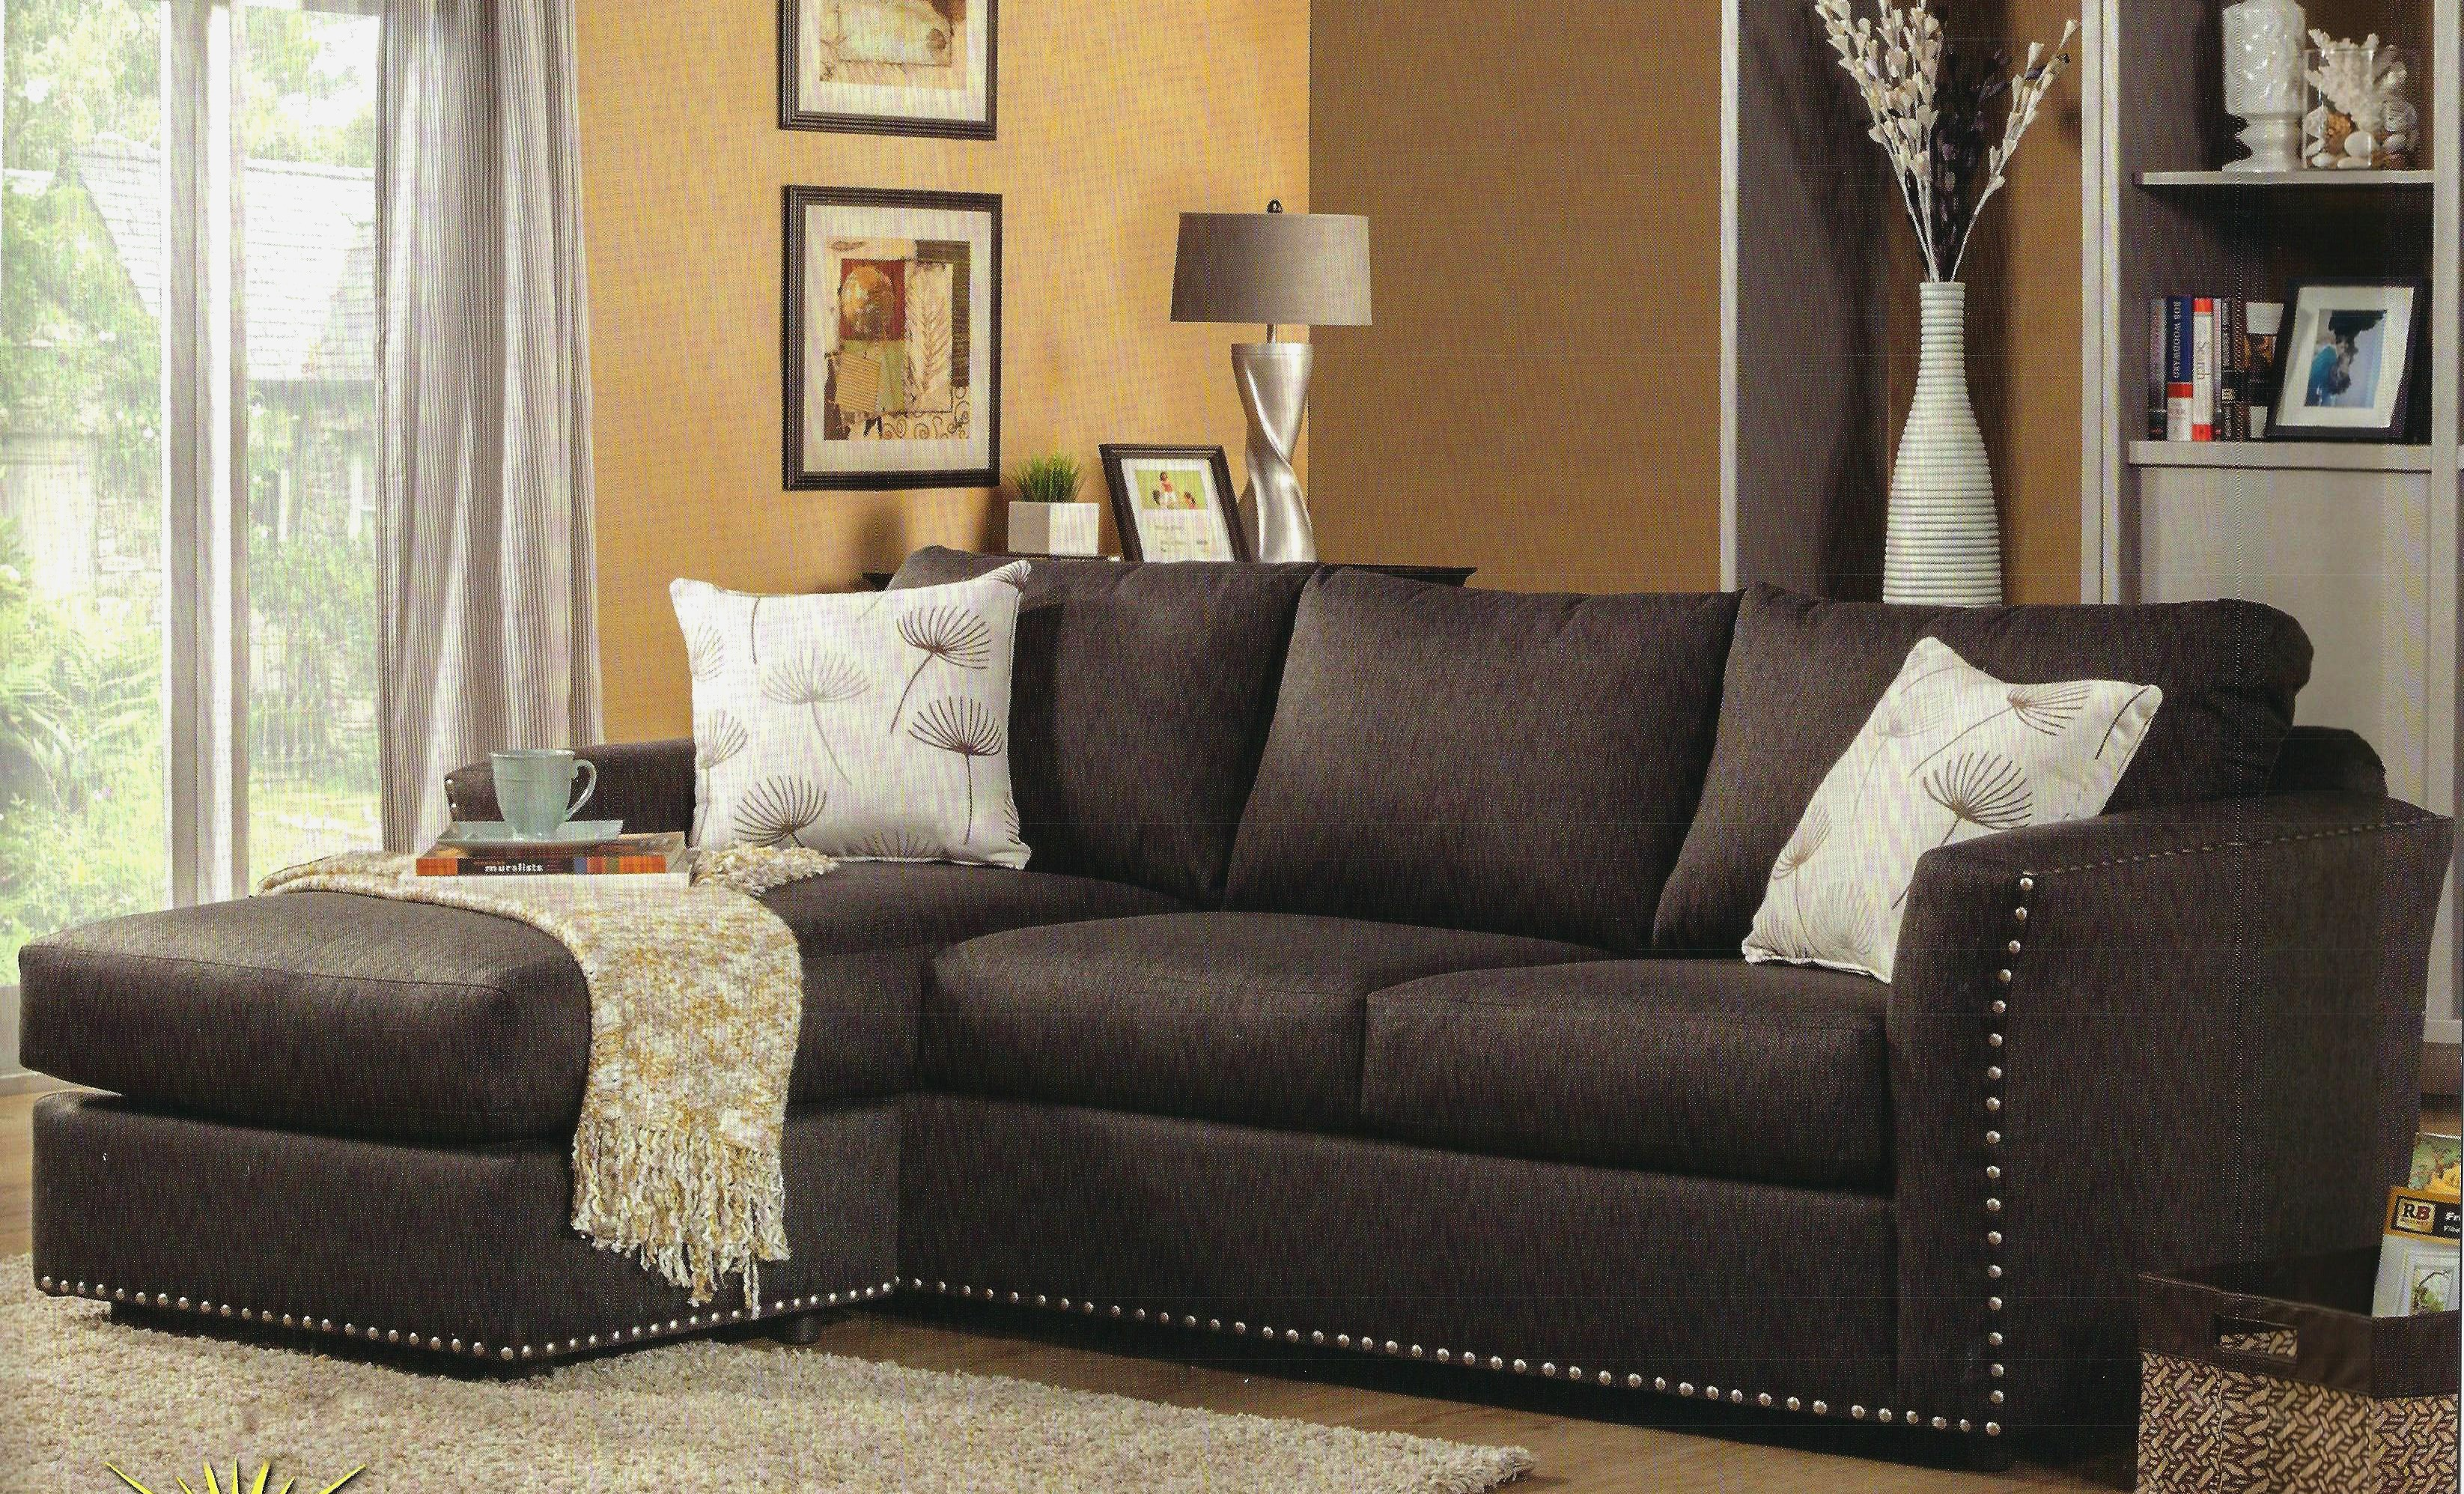 Joel Jones Furniture Is A Family Business That Started Almost 50 Years Ago  In Baldwin Park, California. My Home Was On One Side Of A Large Lot And Was  The ...